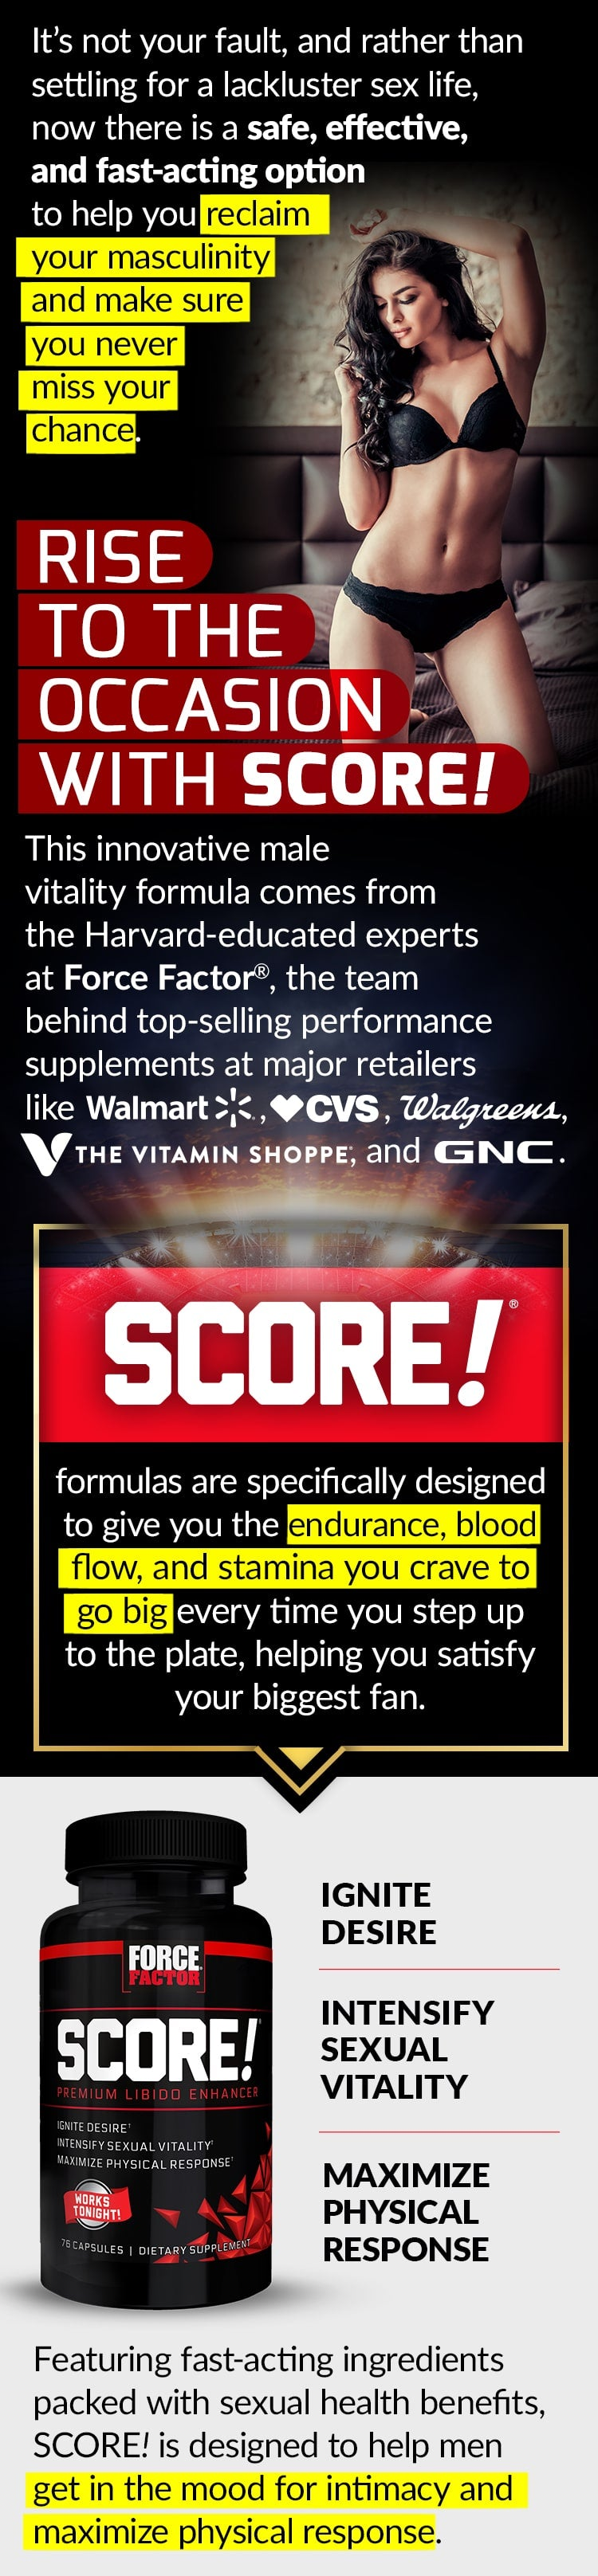 It's not your fault, and rather than settling for a lackluster sex life, now there is a safe, effective, and fast-acting option to help you reclaim your masculinity and make sure you never miss your chance. RISE TO THE OCCASION WITH SCORE! These innovative male vitality formulas come from the Harvard-educated experts at Force Factor®, the team behind top-selling performance supplements at major retailers like Walmart, CVS, Walgreens, The Vitamin Shoppe, and GNC. SCORE!® formulas are specifically designed to give you the endurance, blood flow, and stamina you crave to go big every time you step up to the plate, helping you satisfy your biggest fan. Featuring fast-acting ingredients packed with sexual health benefits, SCORE! is designed to help men get in the mood for intimacy and maximize physical response. IGNITE DESIRE. INTENSIFY SEXUAL VITALITY. MAXIMIZE PHYSICAL RESPONSE.